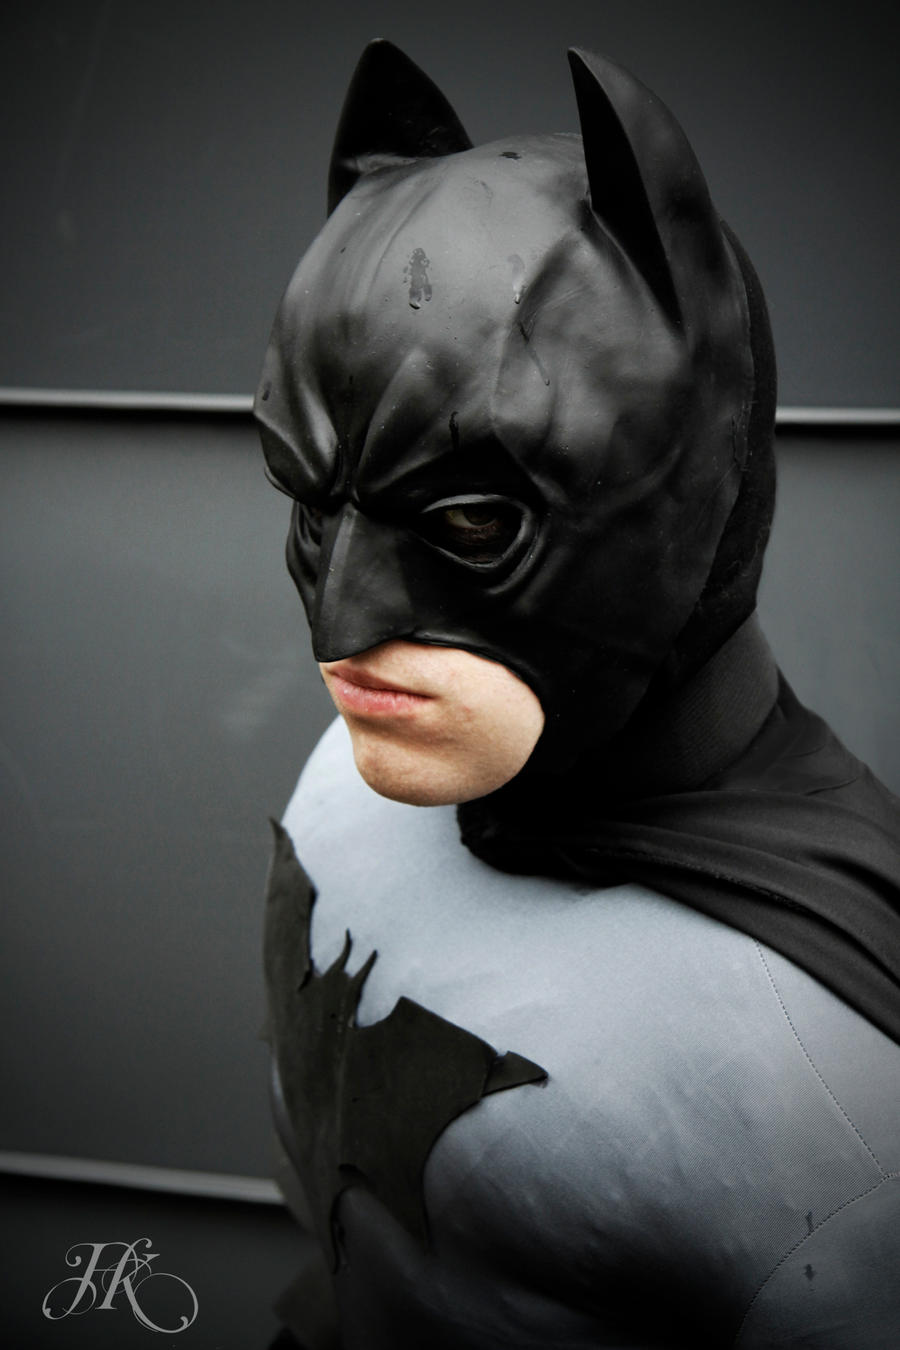 Raptus 2012 - Batman by Hannekake